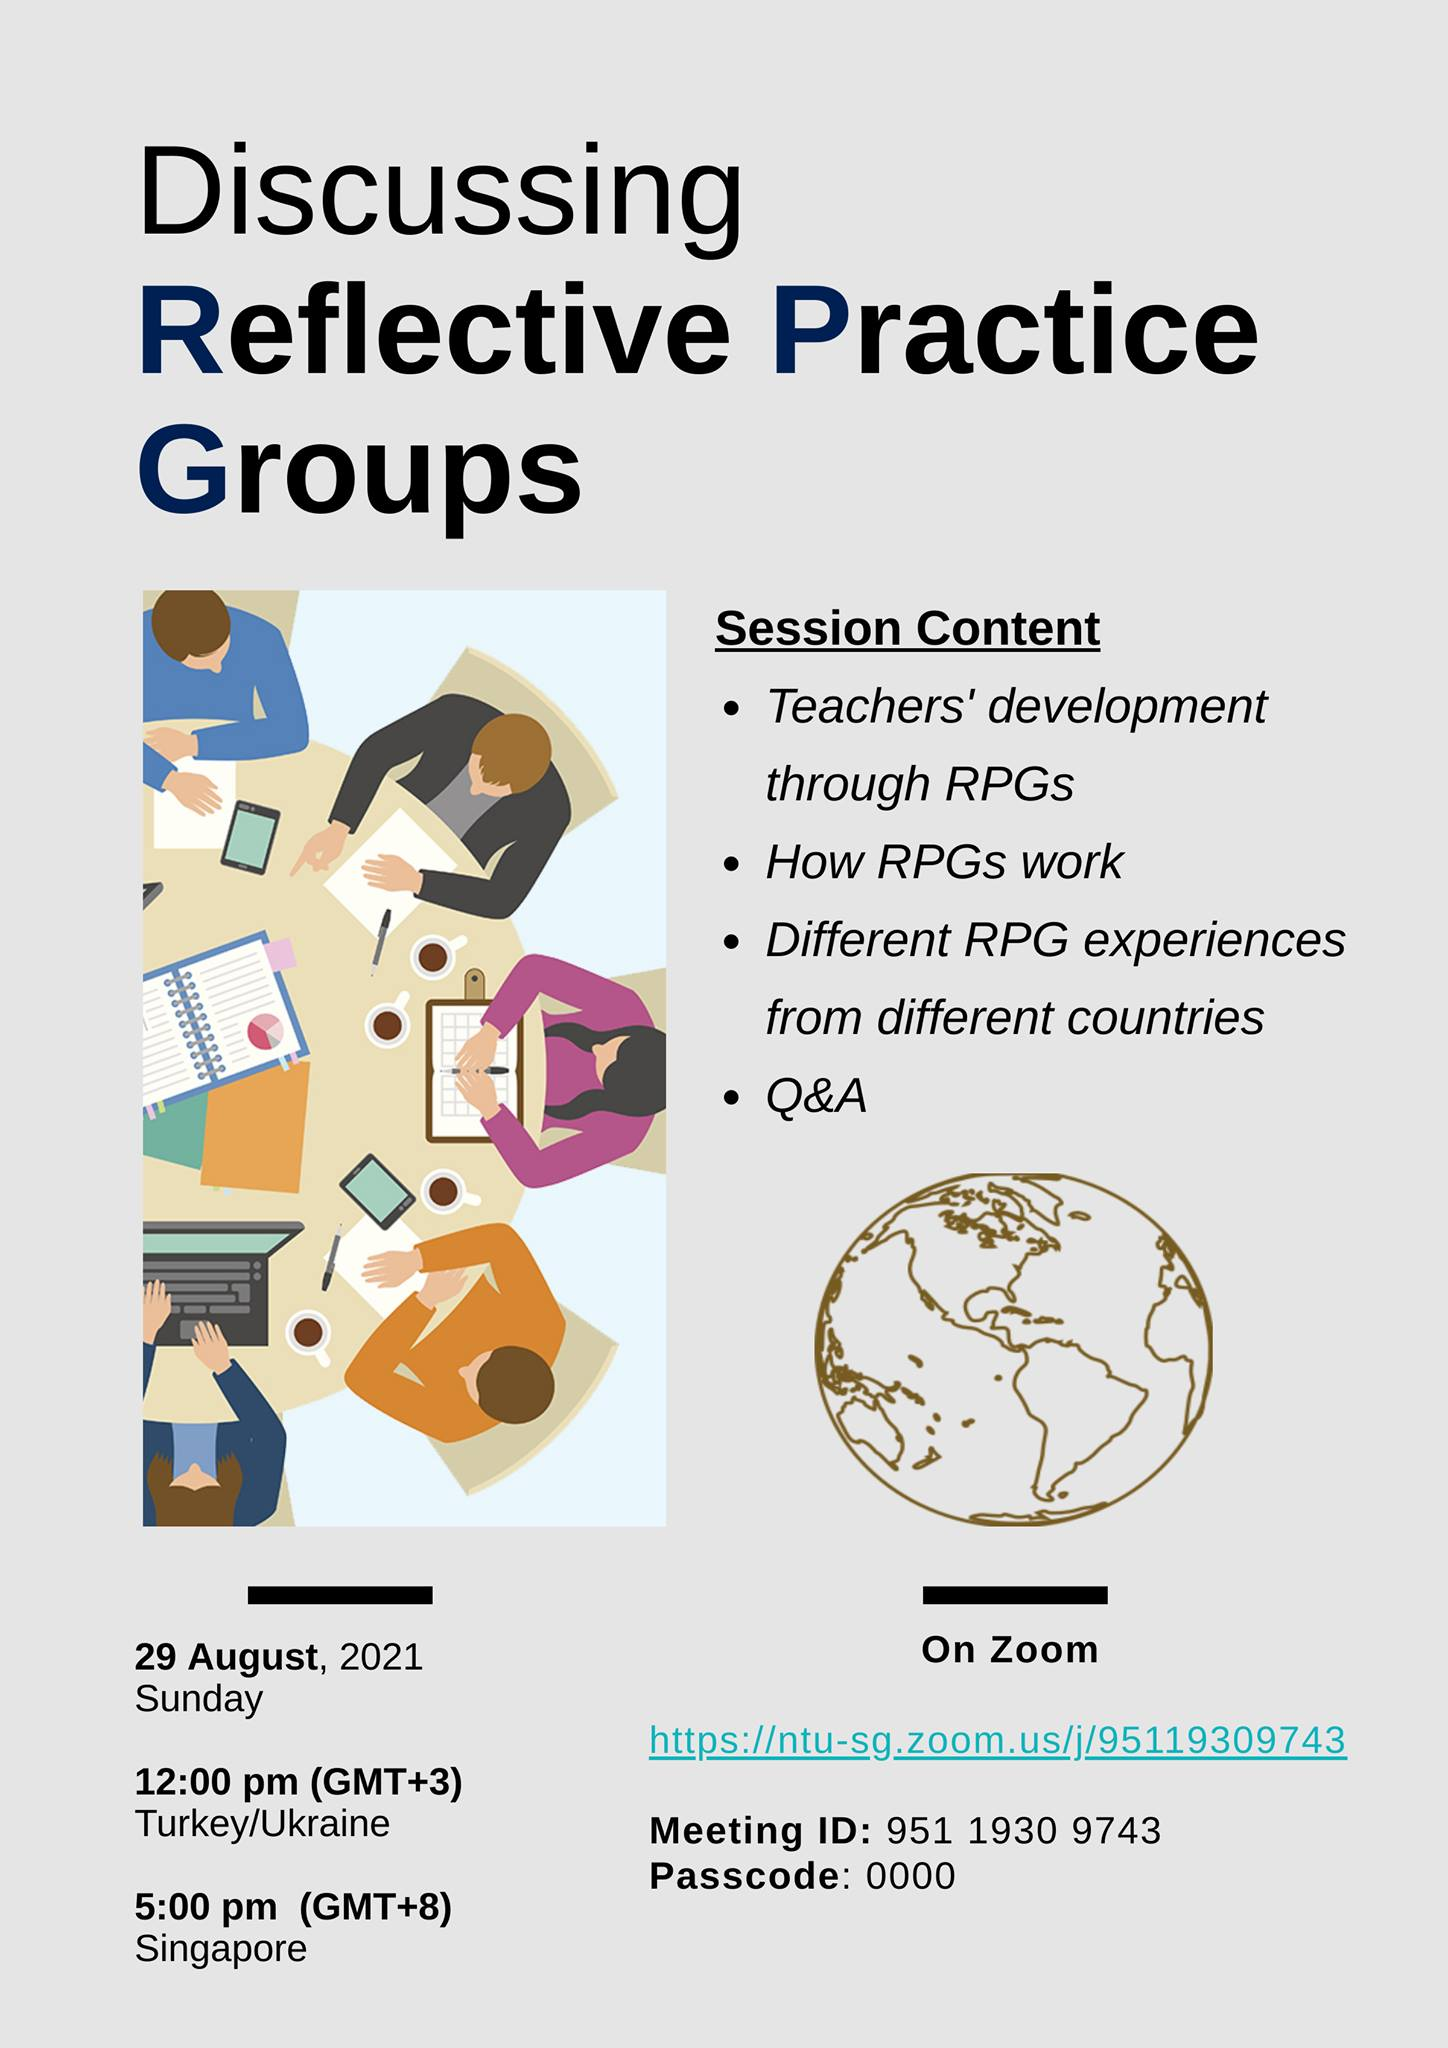 Discussing Reflective Practice Groups